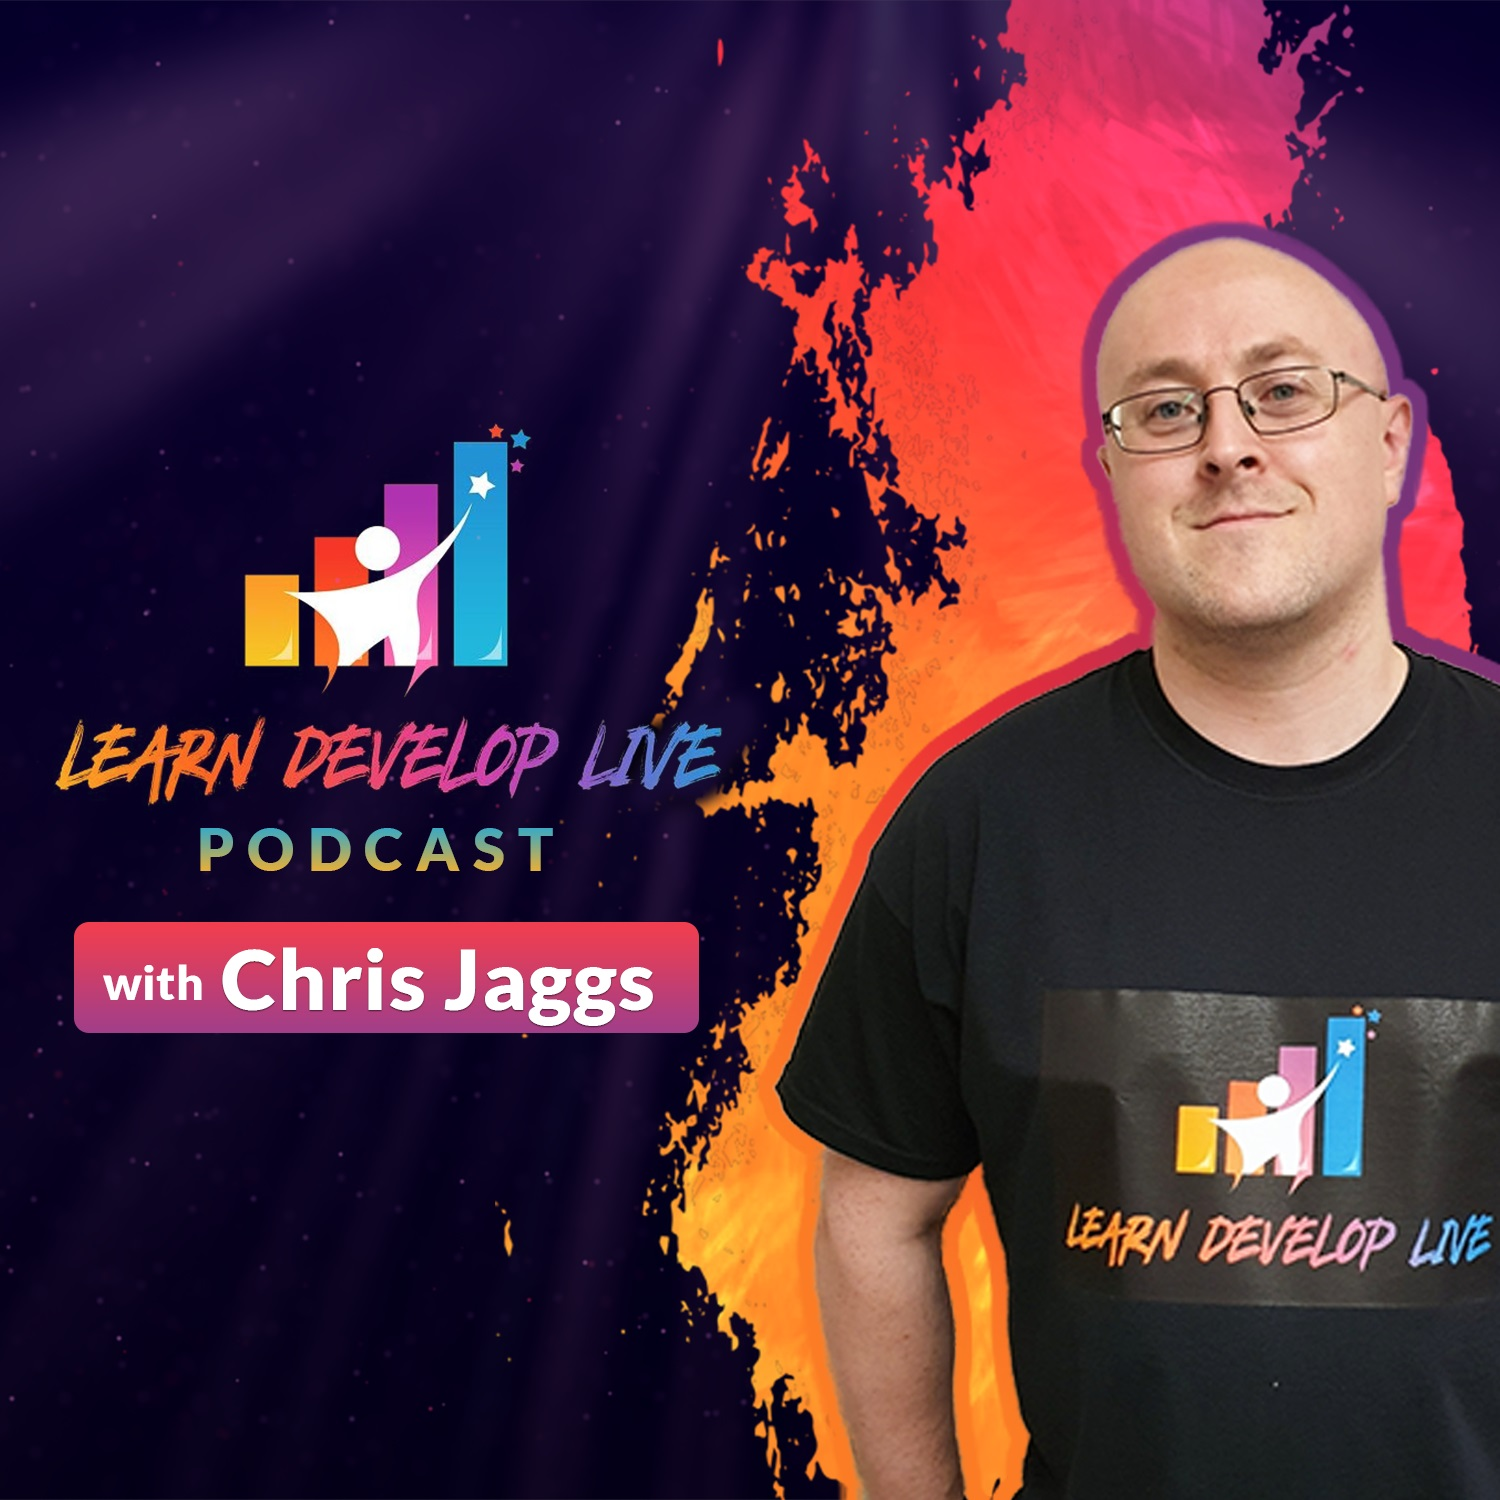 Motivation & Inspiration from Learn Develop Live with Chris Jaggs